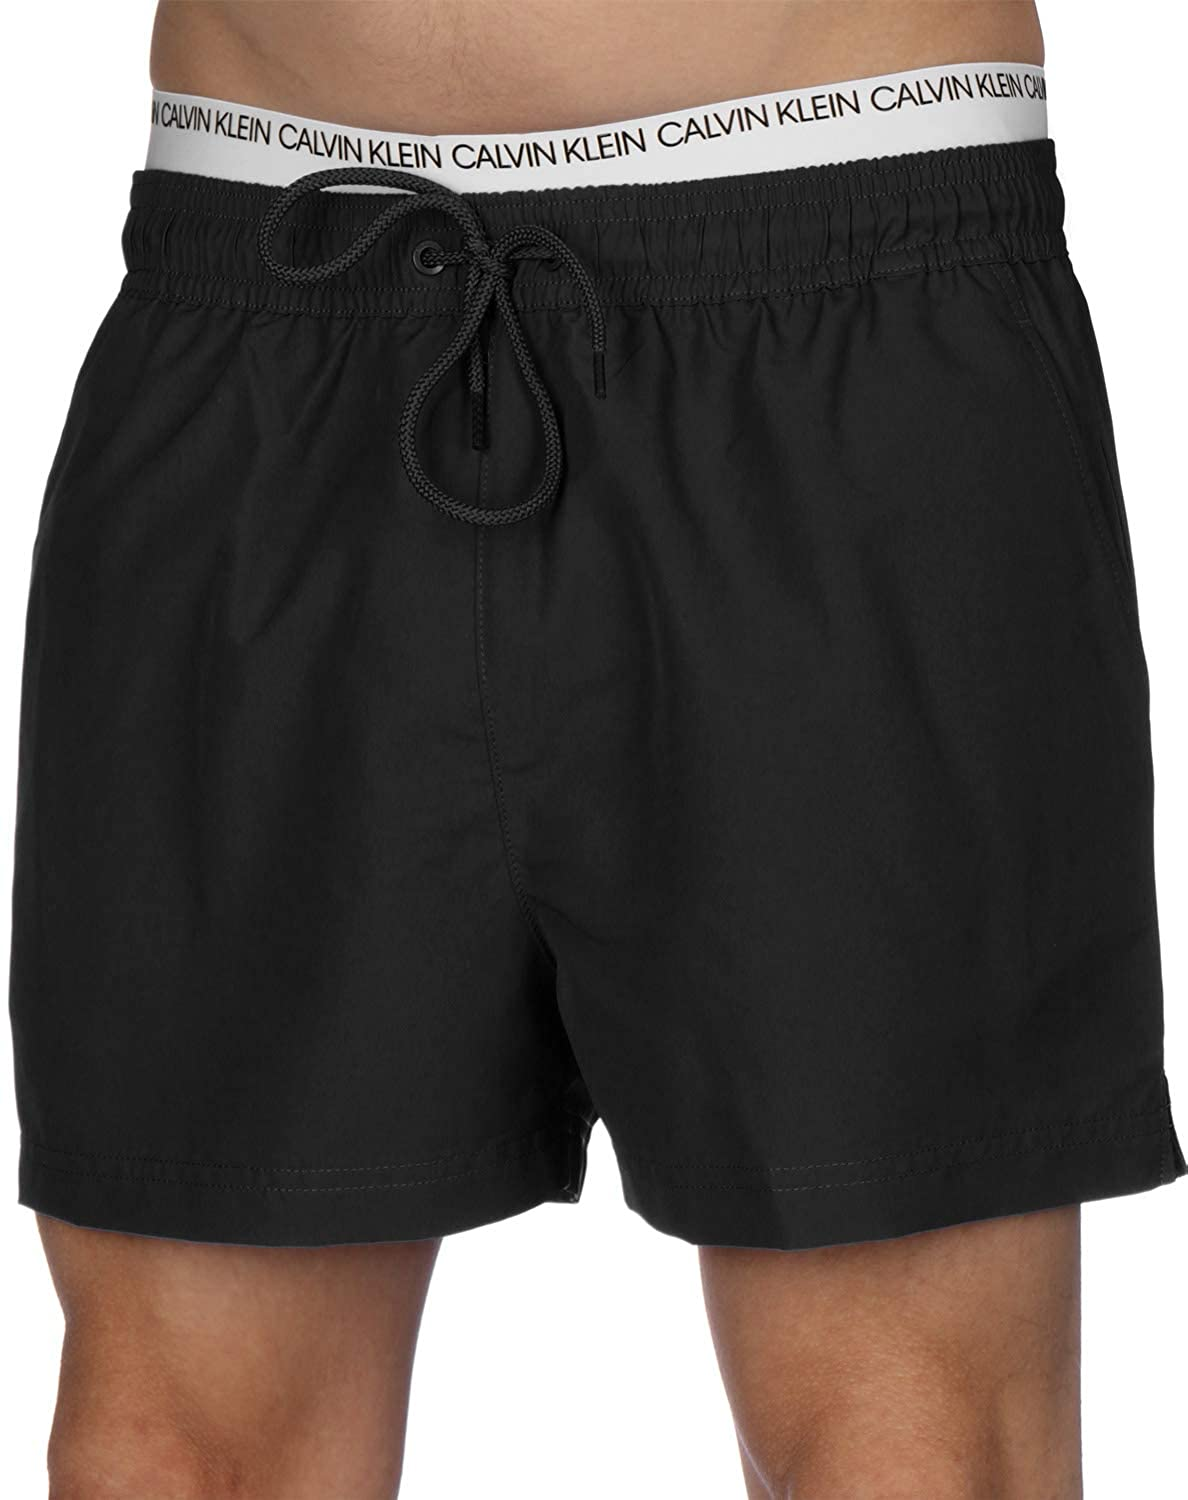 72e2aa48e2 Calvin Klein Short Double Waistband Swim Shorts | Amazon.com